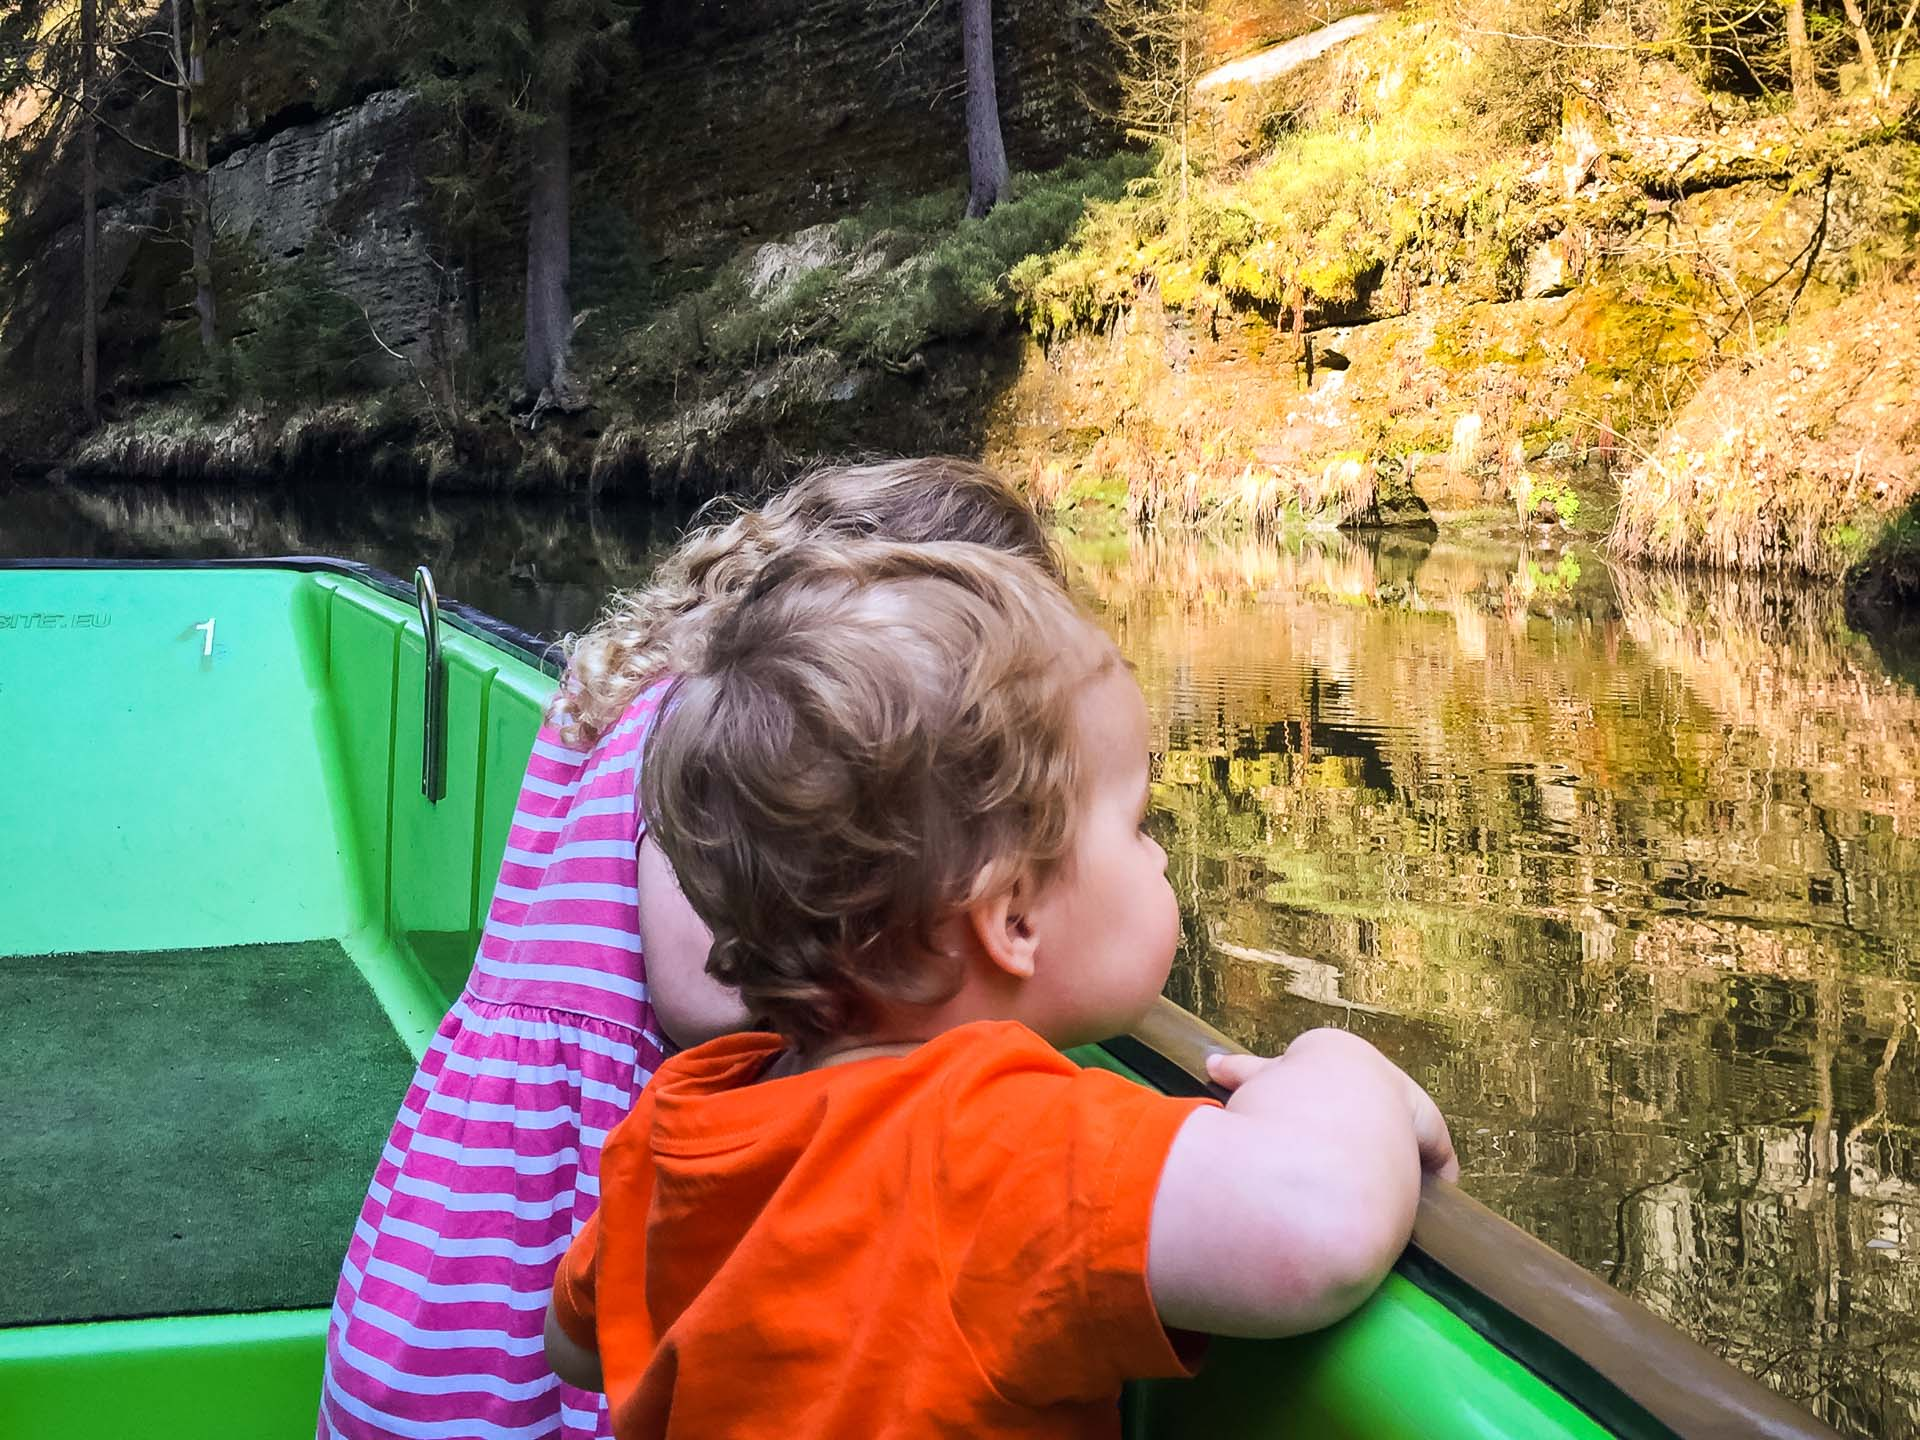 Boat ride in Edmond Gorge with Children - Bohemian Switzerland in Czech Republic